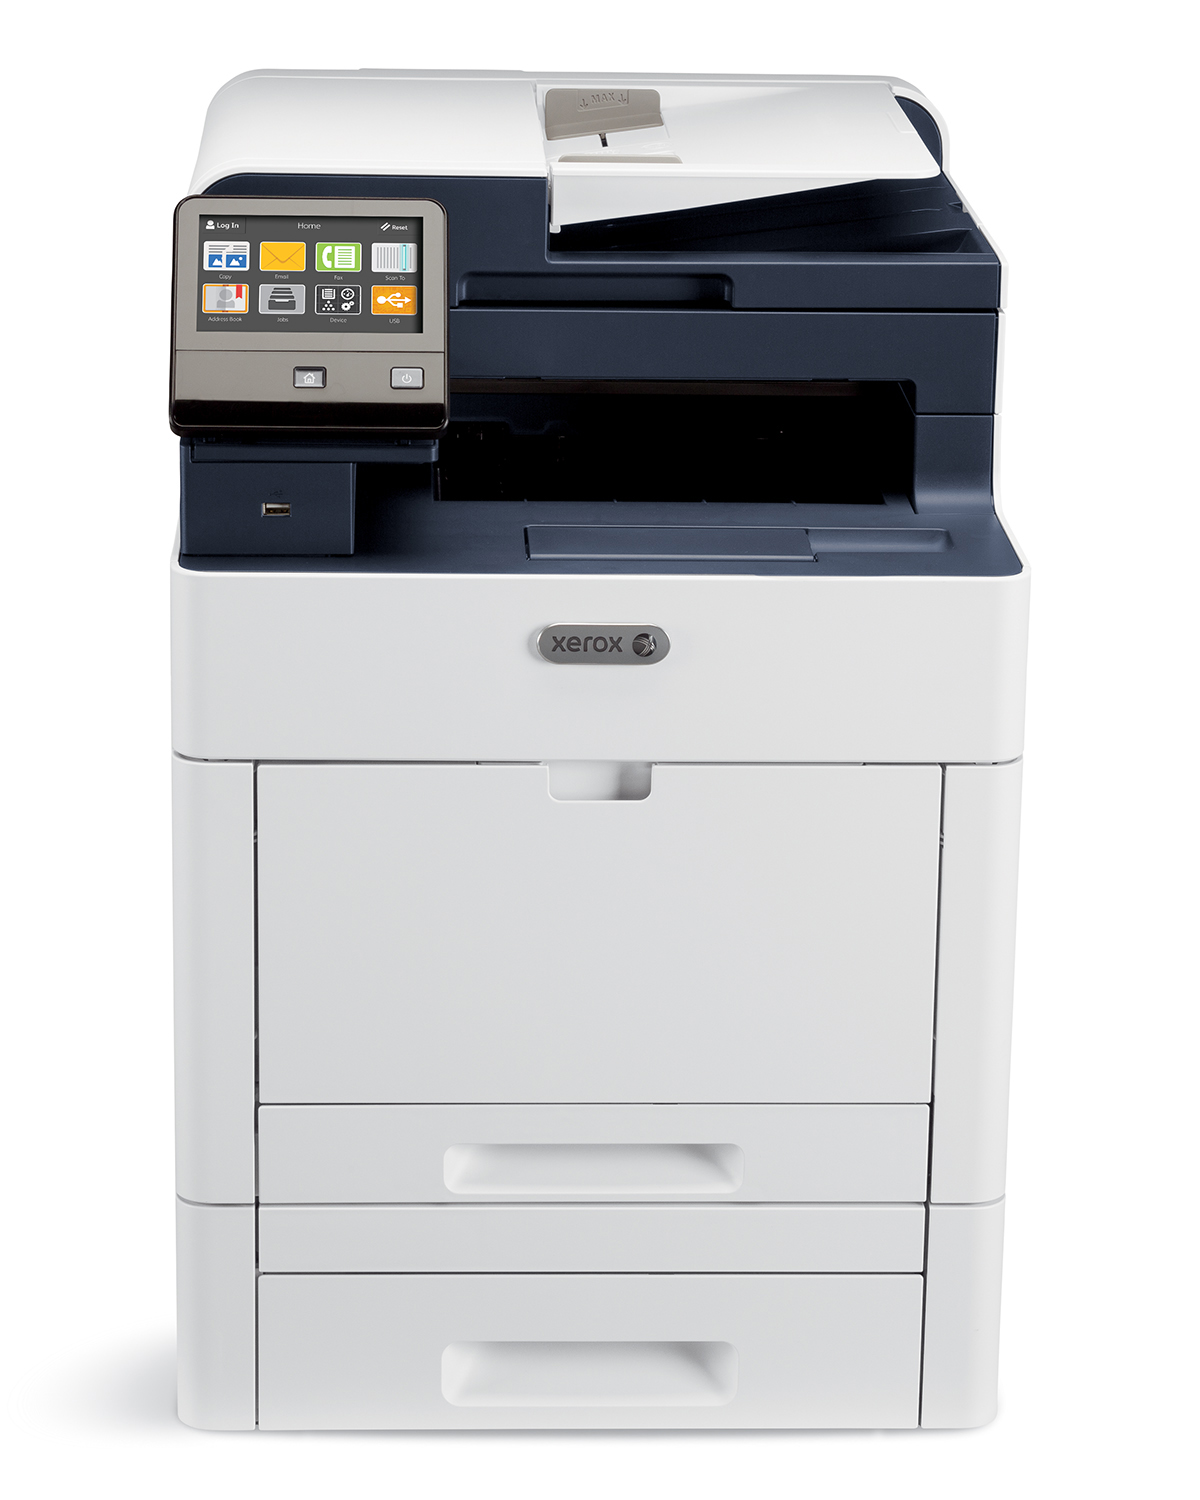 Xerox WorkCenter 6515 color multifunction printer